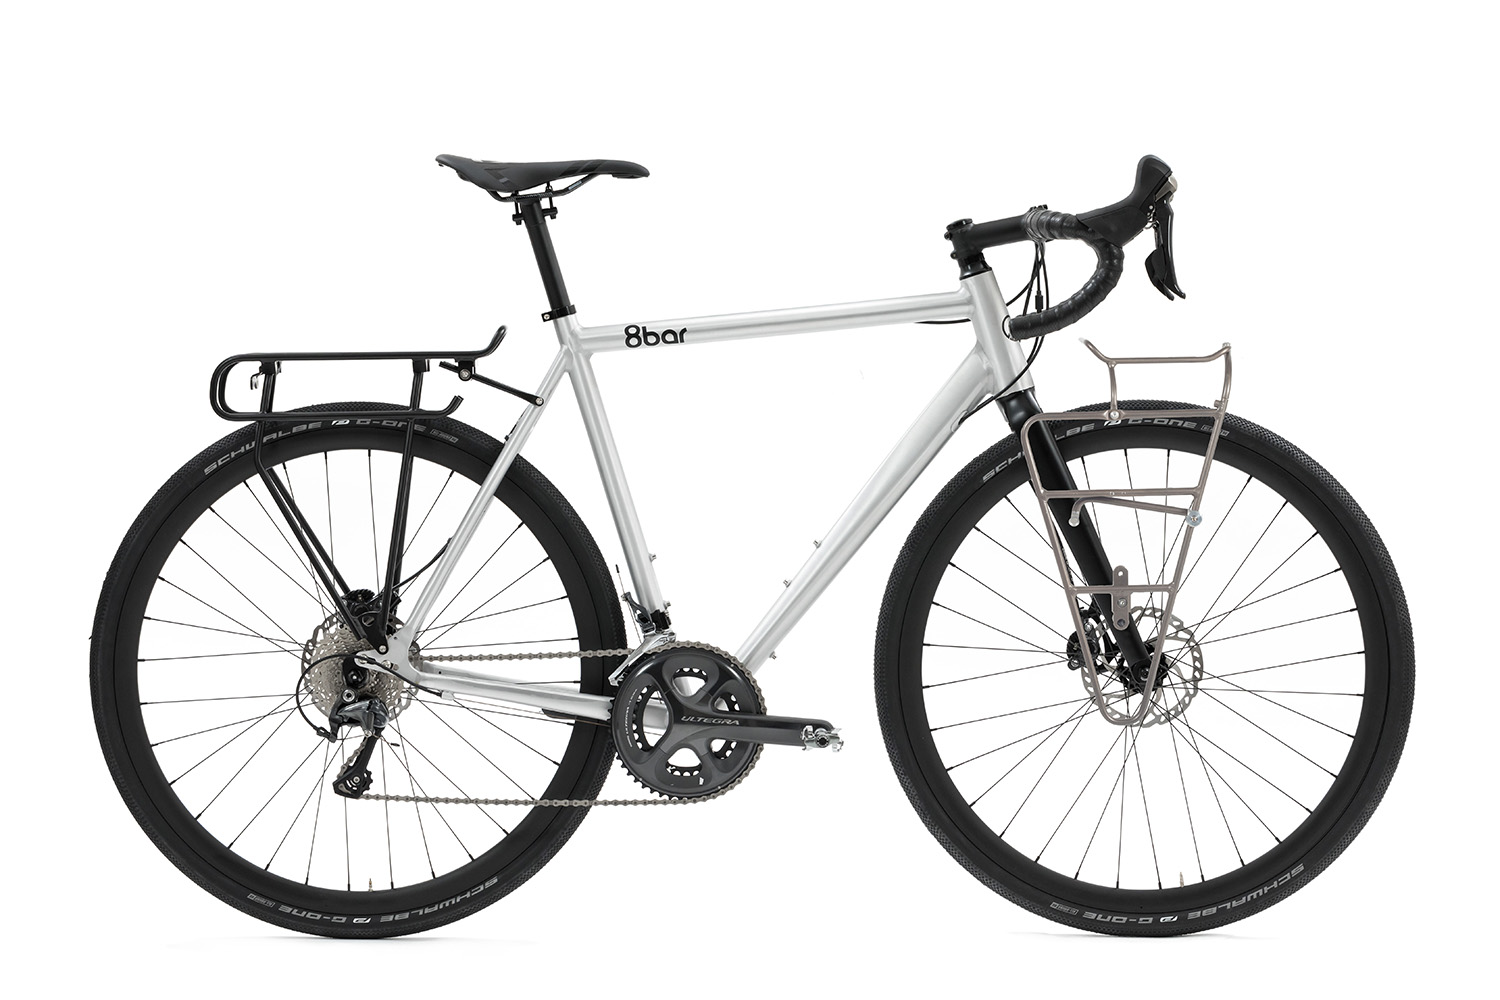 8bar_mitte_gravel-pro-new